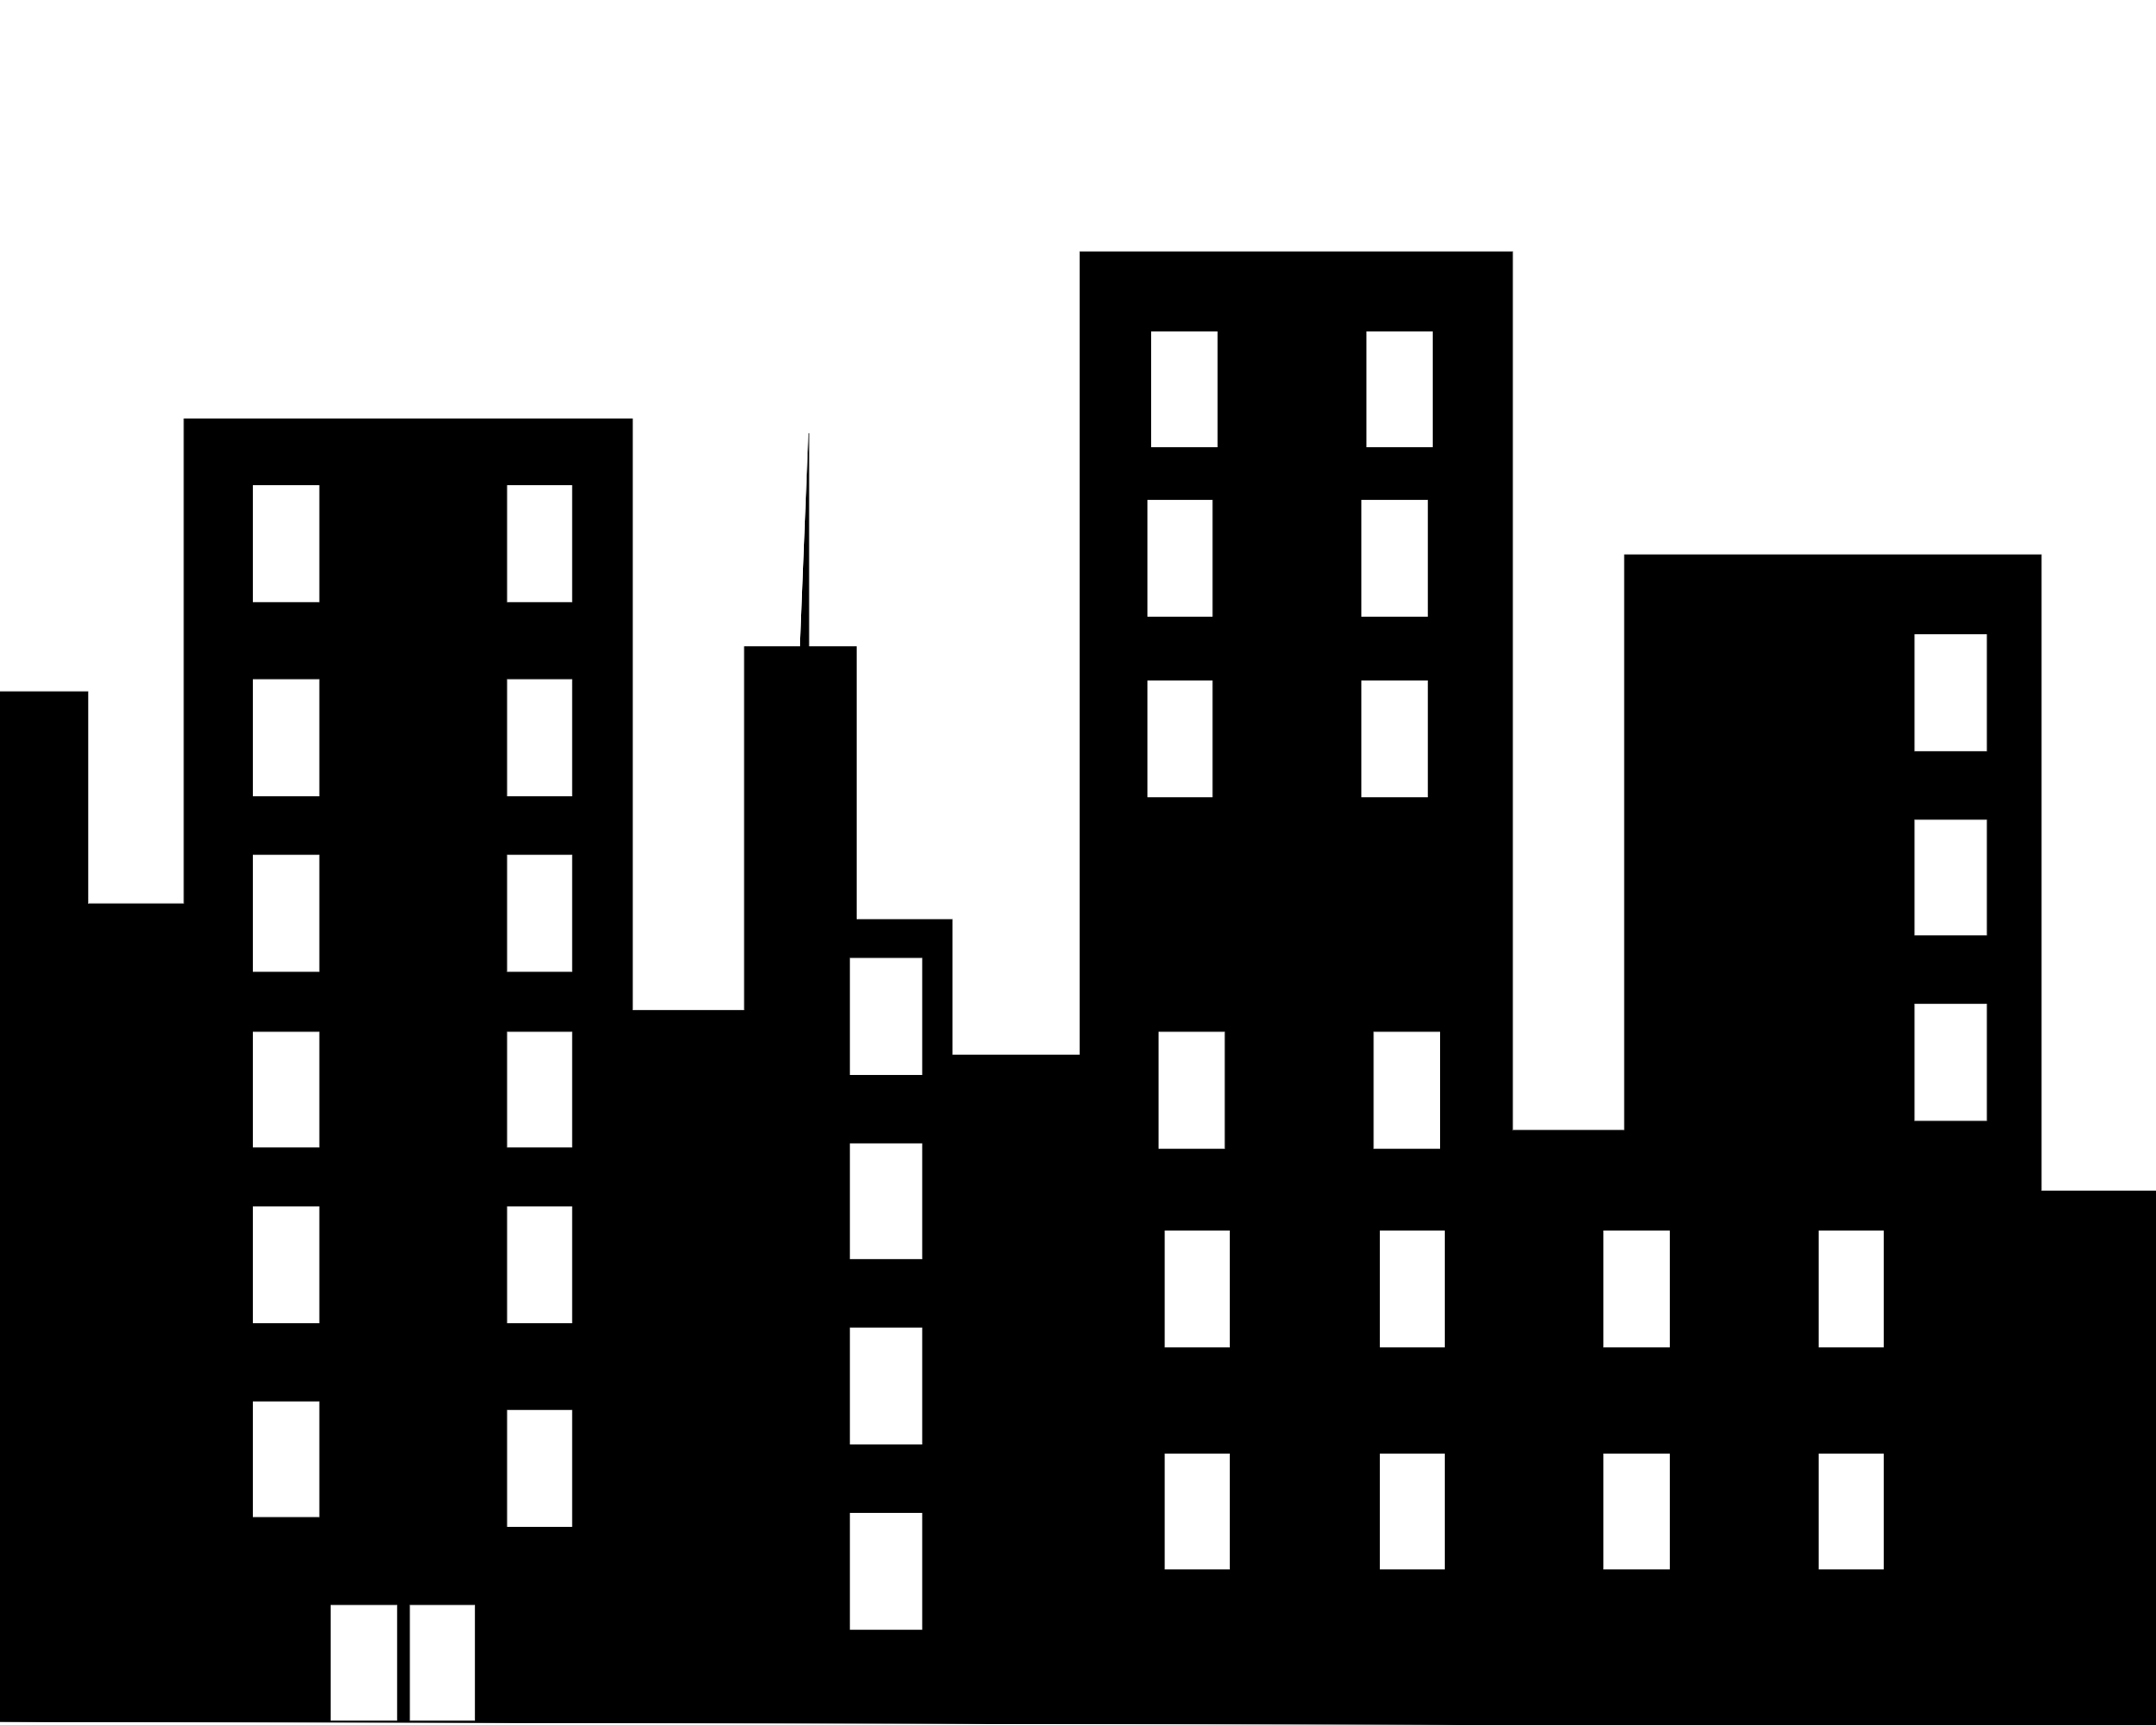 Buildngs clipart vector library download Buildings clipart Fresh Black Building Cliparts Free Download Clip ... vector library download